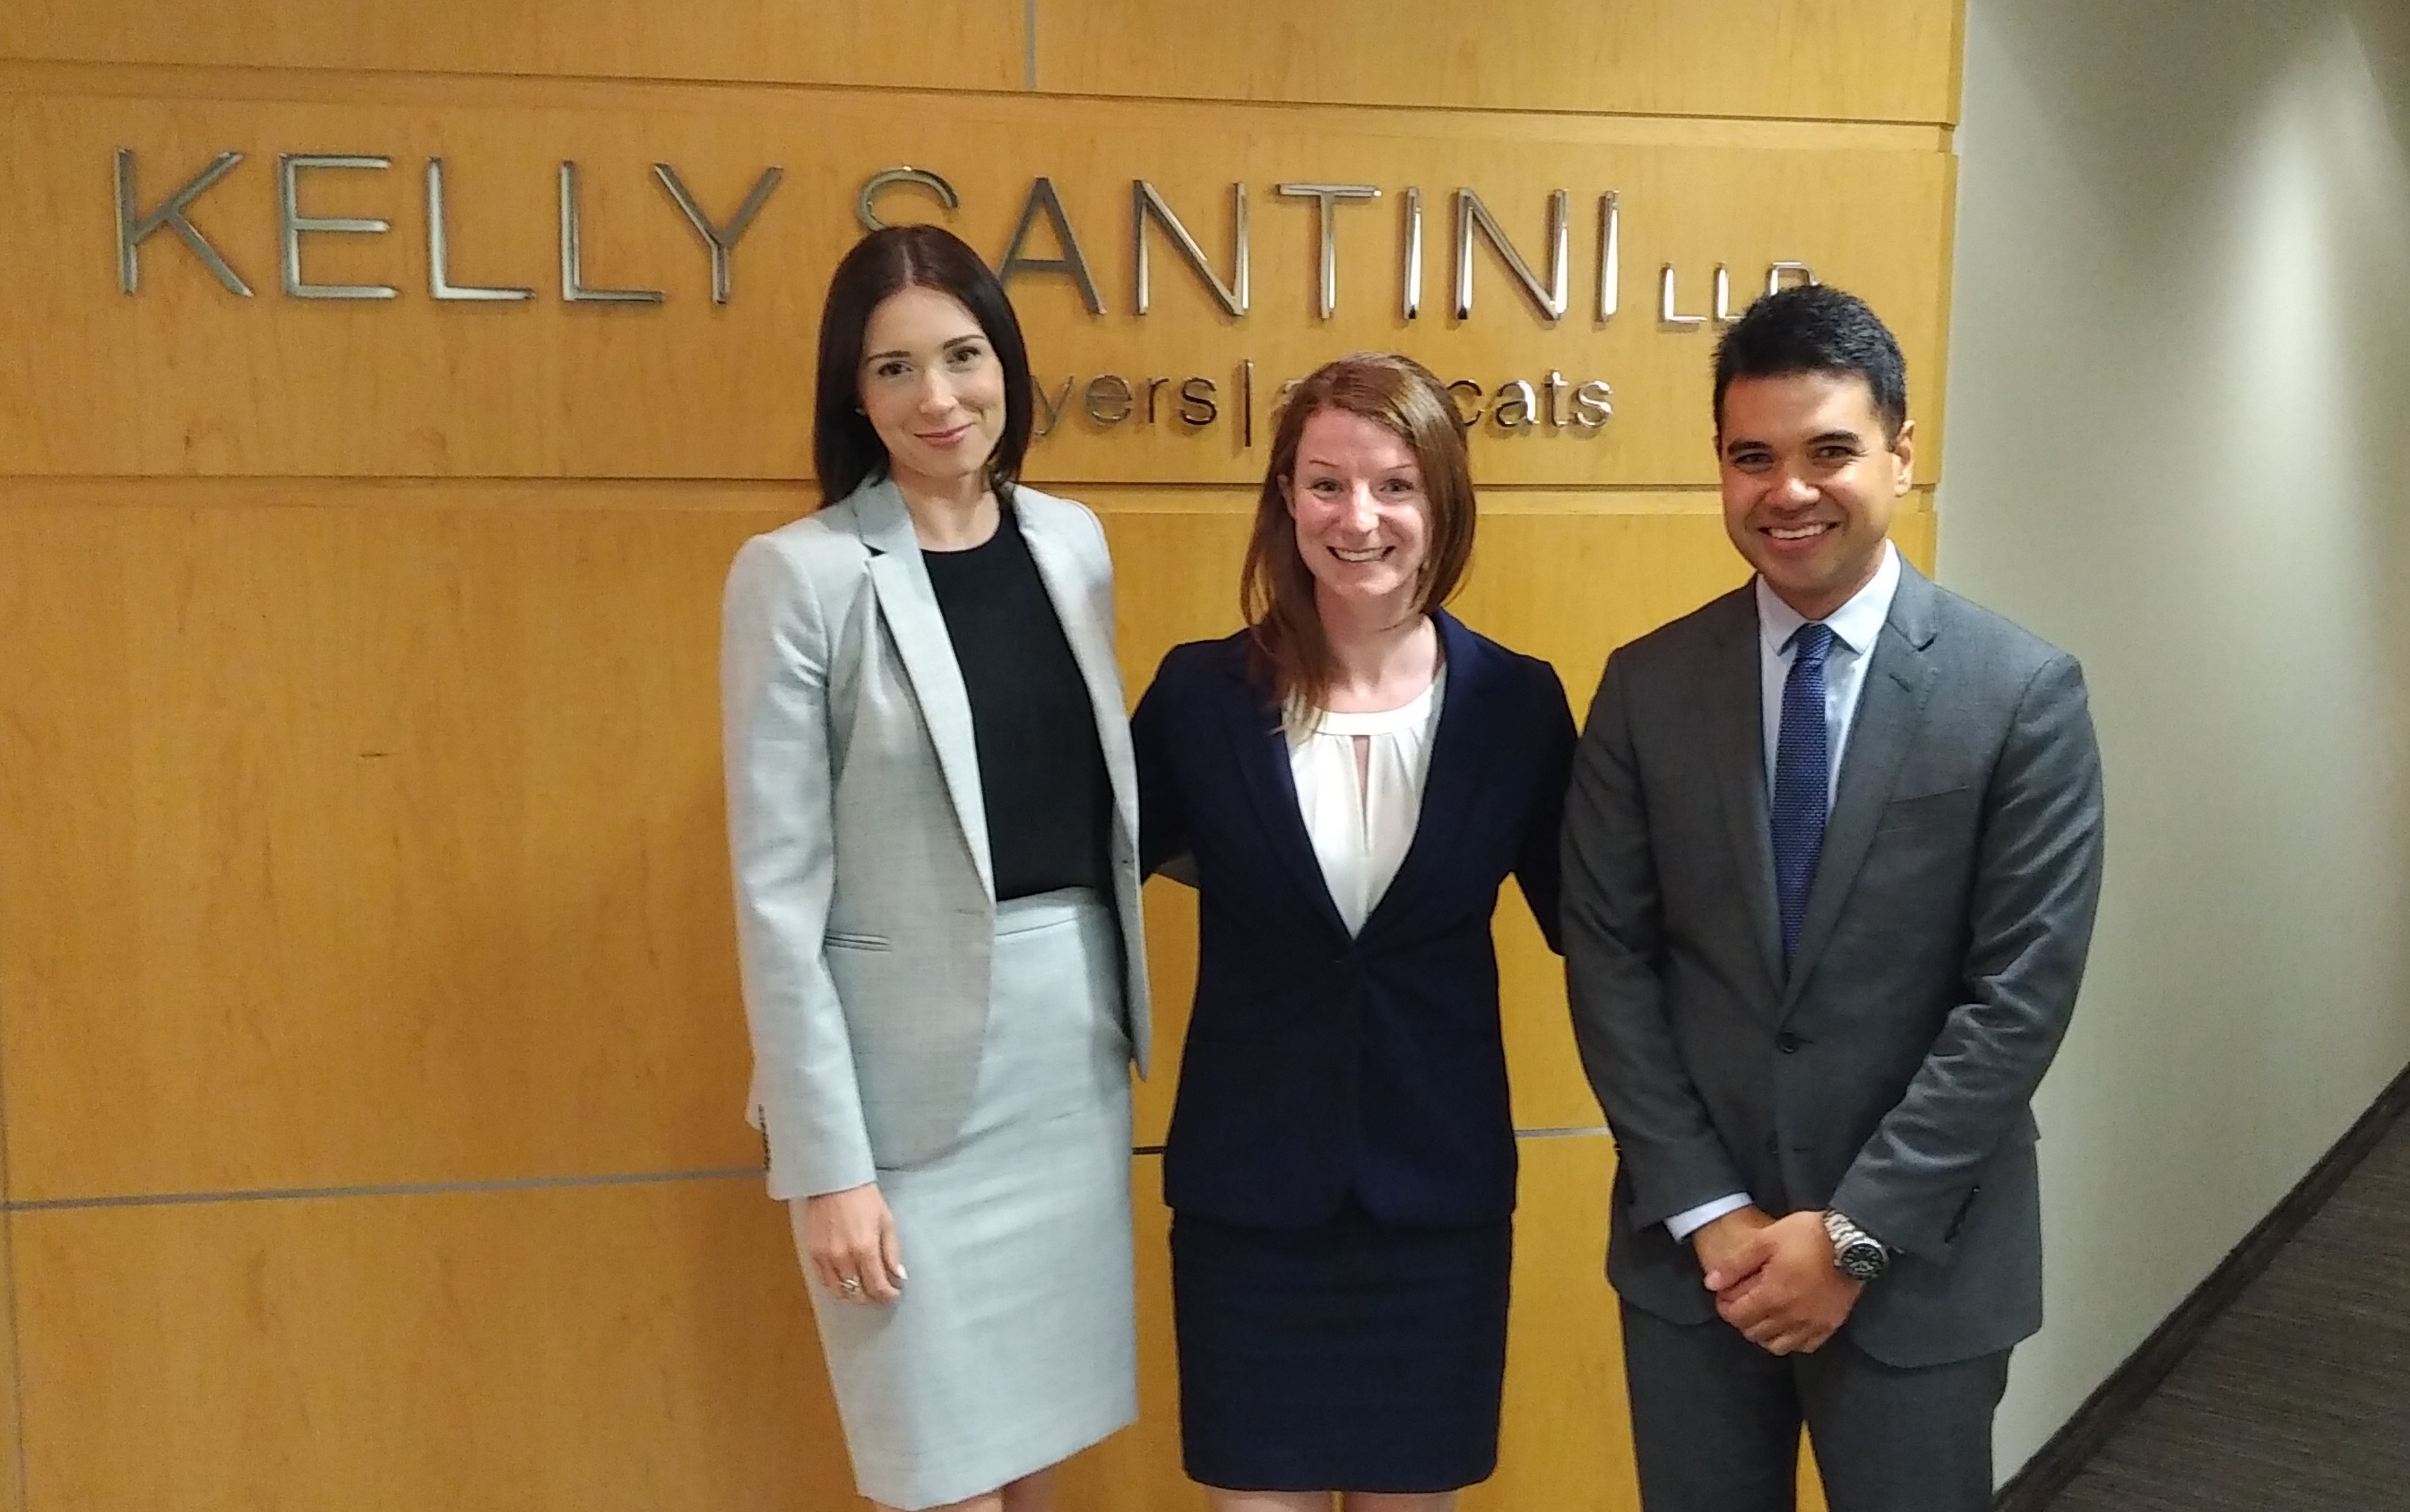 Kelly Santini Articling Students 2018/19